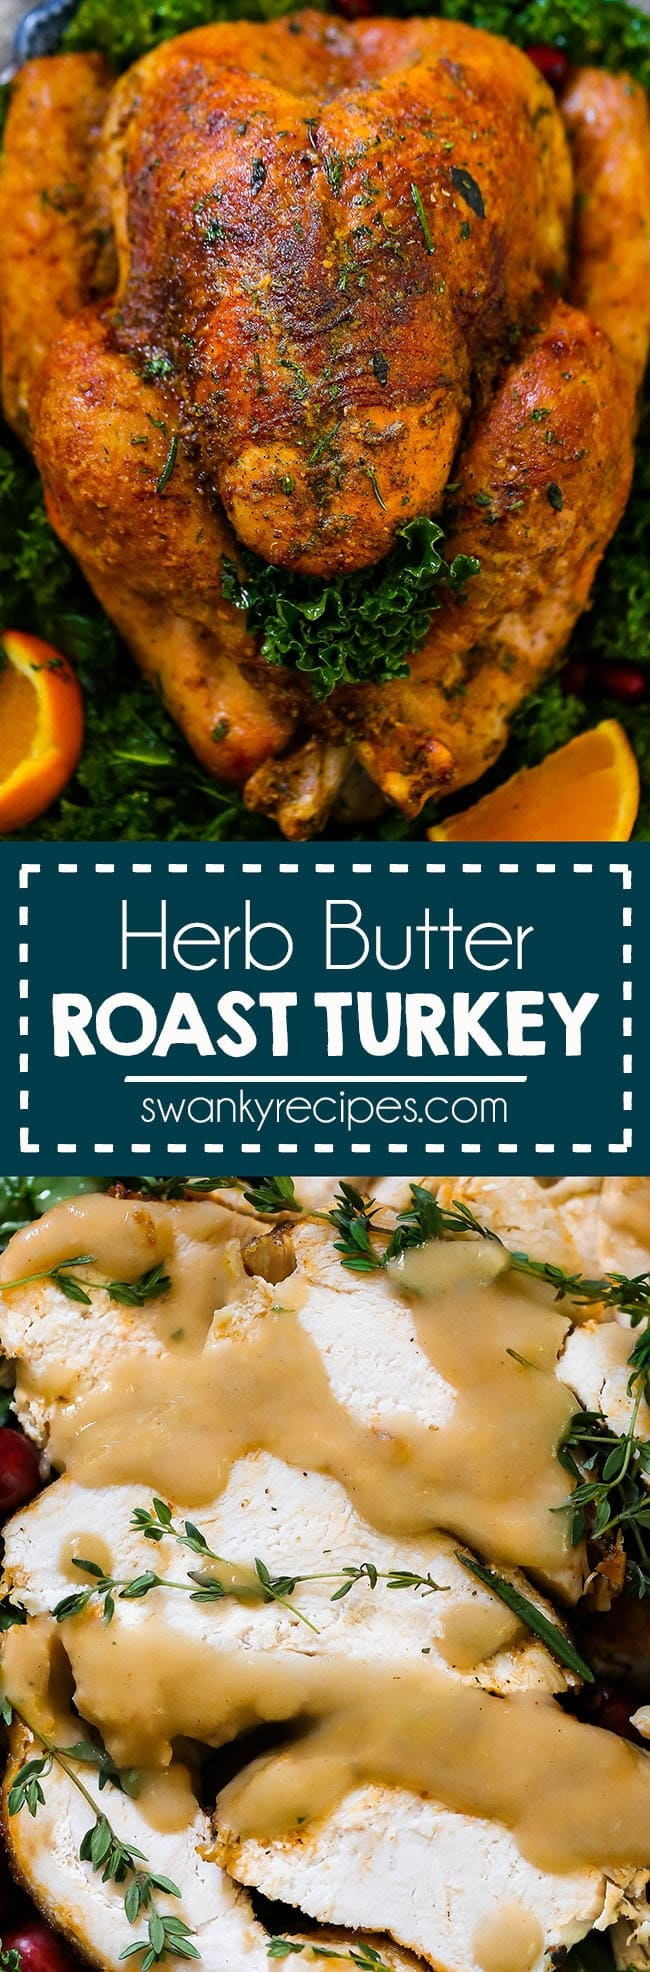 Juicy Roast Turkey with Herb Butter rub. The perfect moist and flavorful whole turkey roasted in the oven for Thanksgiving dinner.